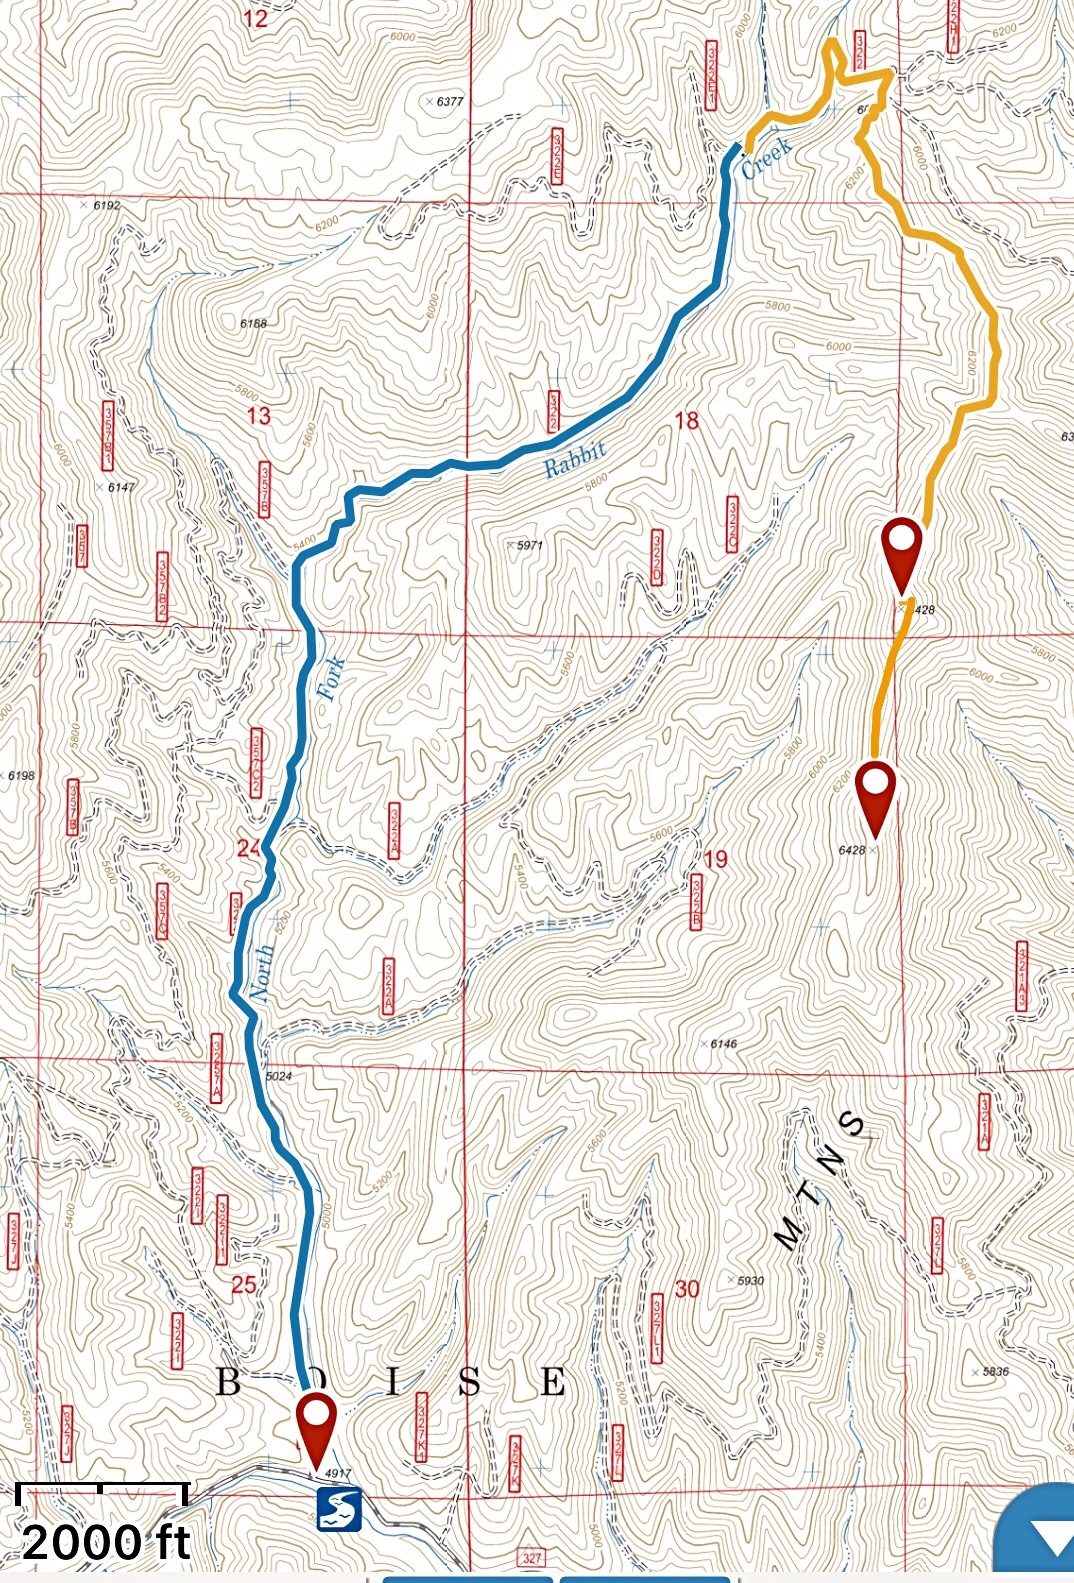 I followed Erik's route in 2018. The blue line is FS-322. The gold line is the trail. Stats: 5.4 miles 1,030 feet of elevation gain round trip.